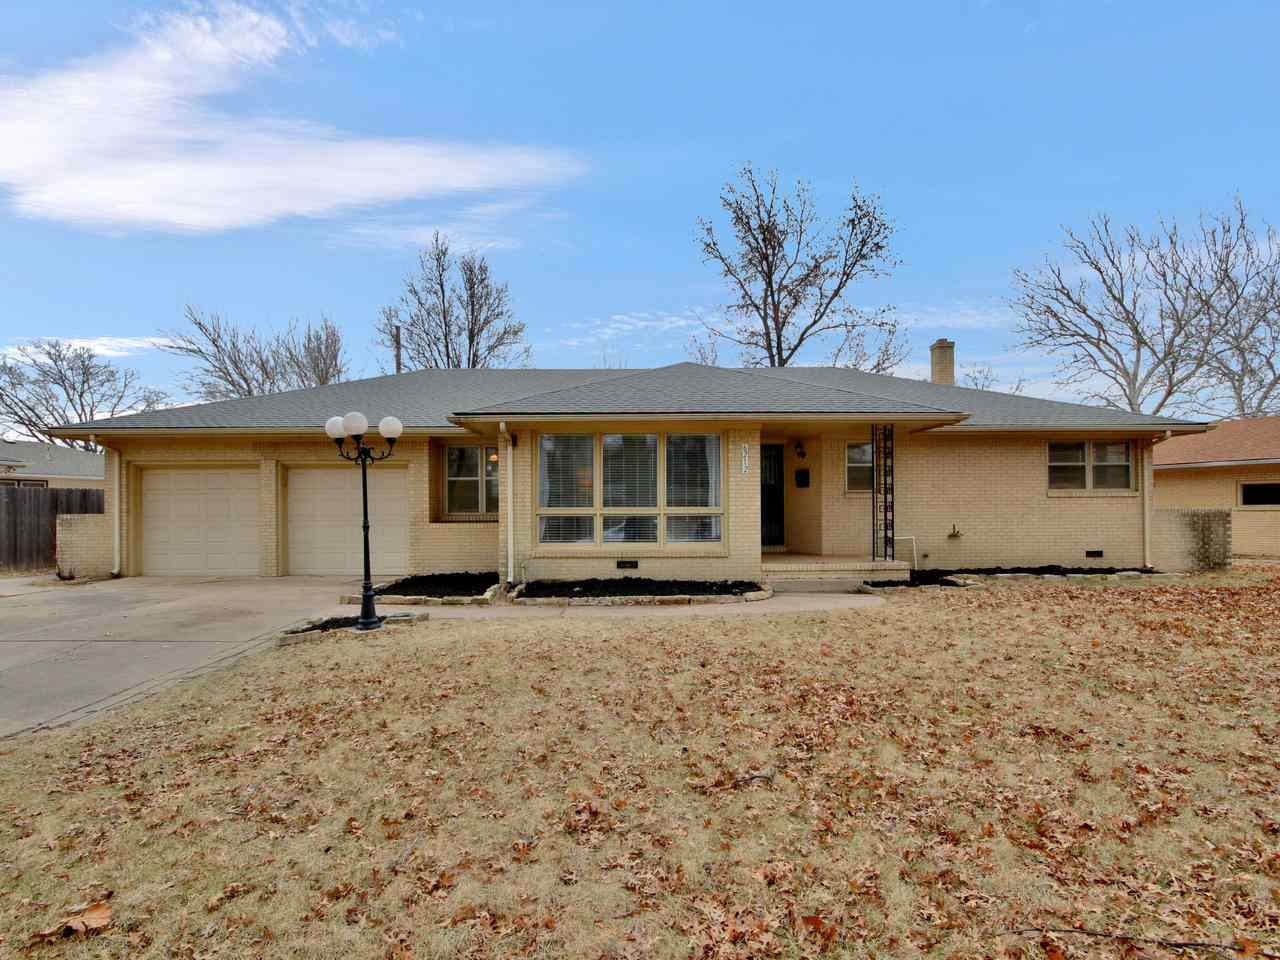 Great opportunity to own a beautiful updated Mid-Century/Modern home on a tree lined street located